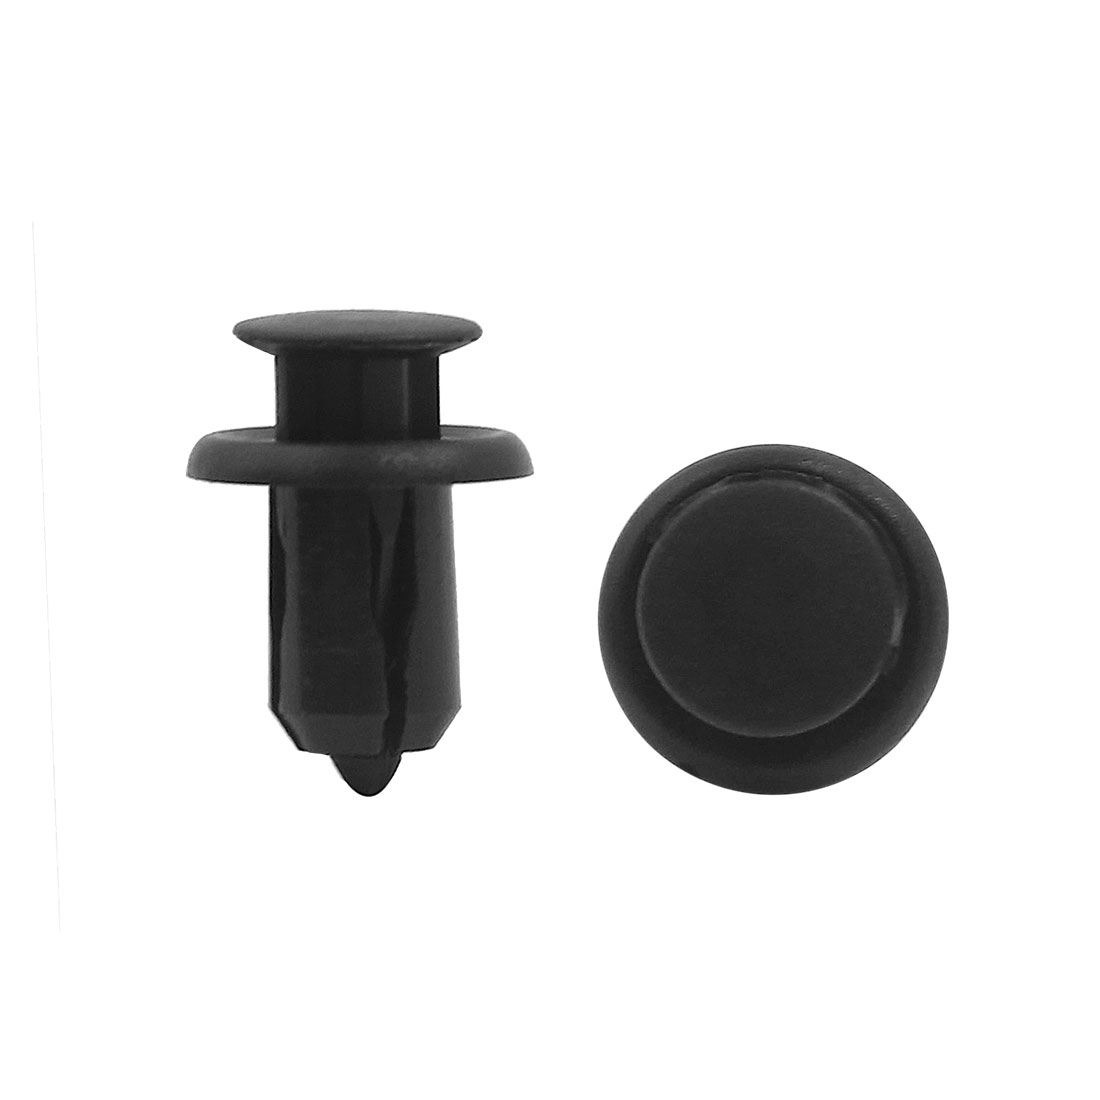 40pcs Black 11mm Hole Plastic Rivets Fastener Fender Push Pin Clips for Auto